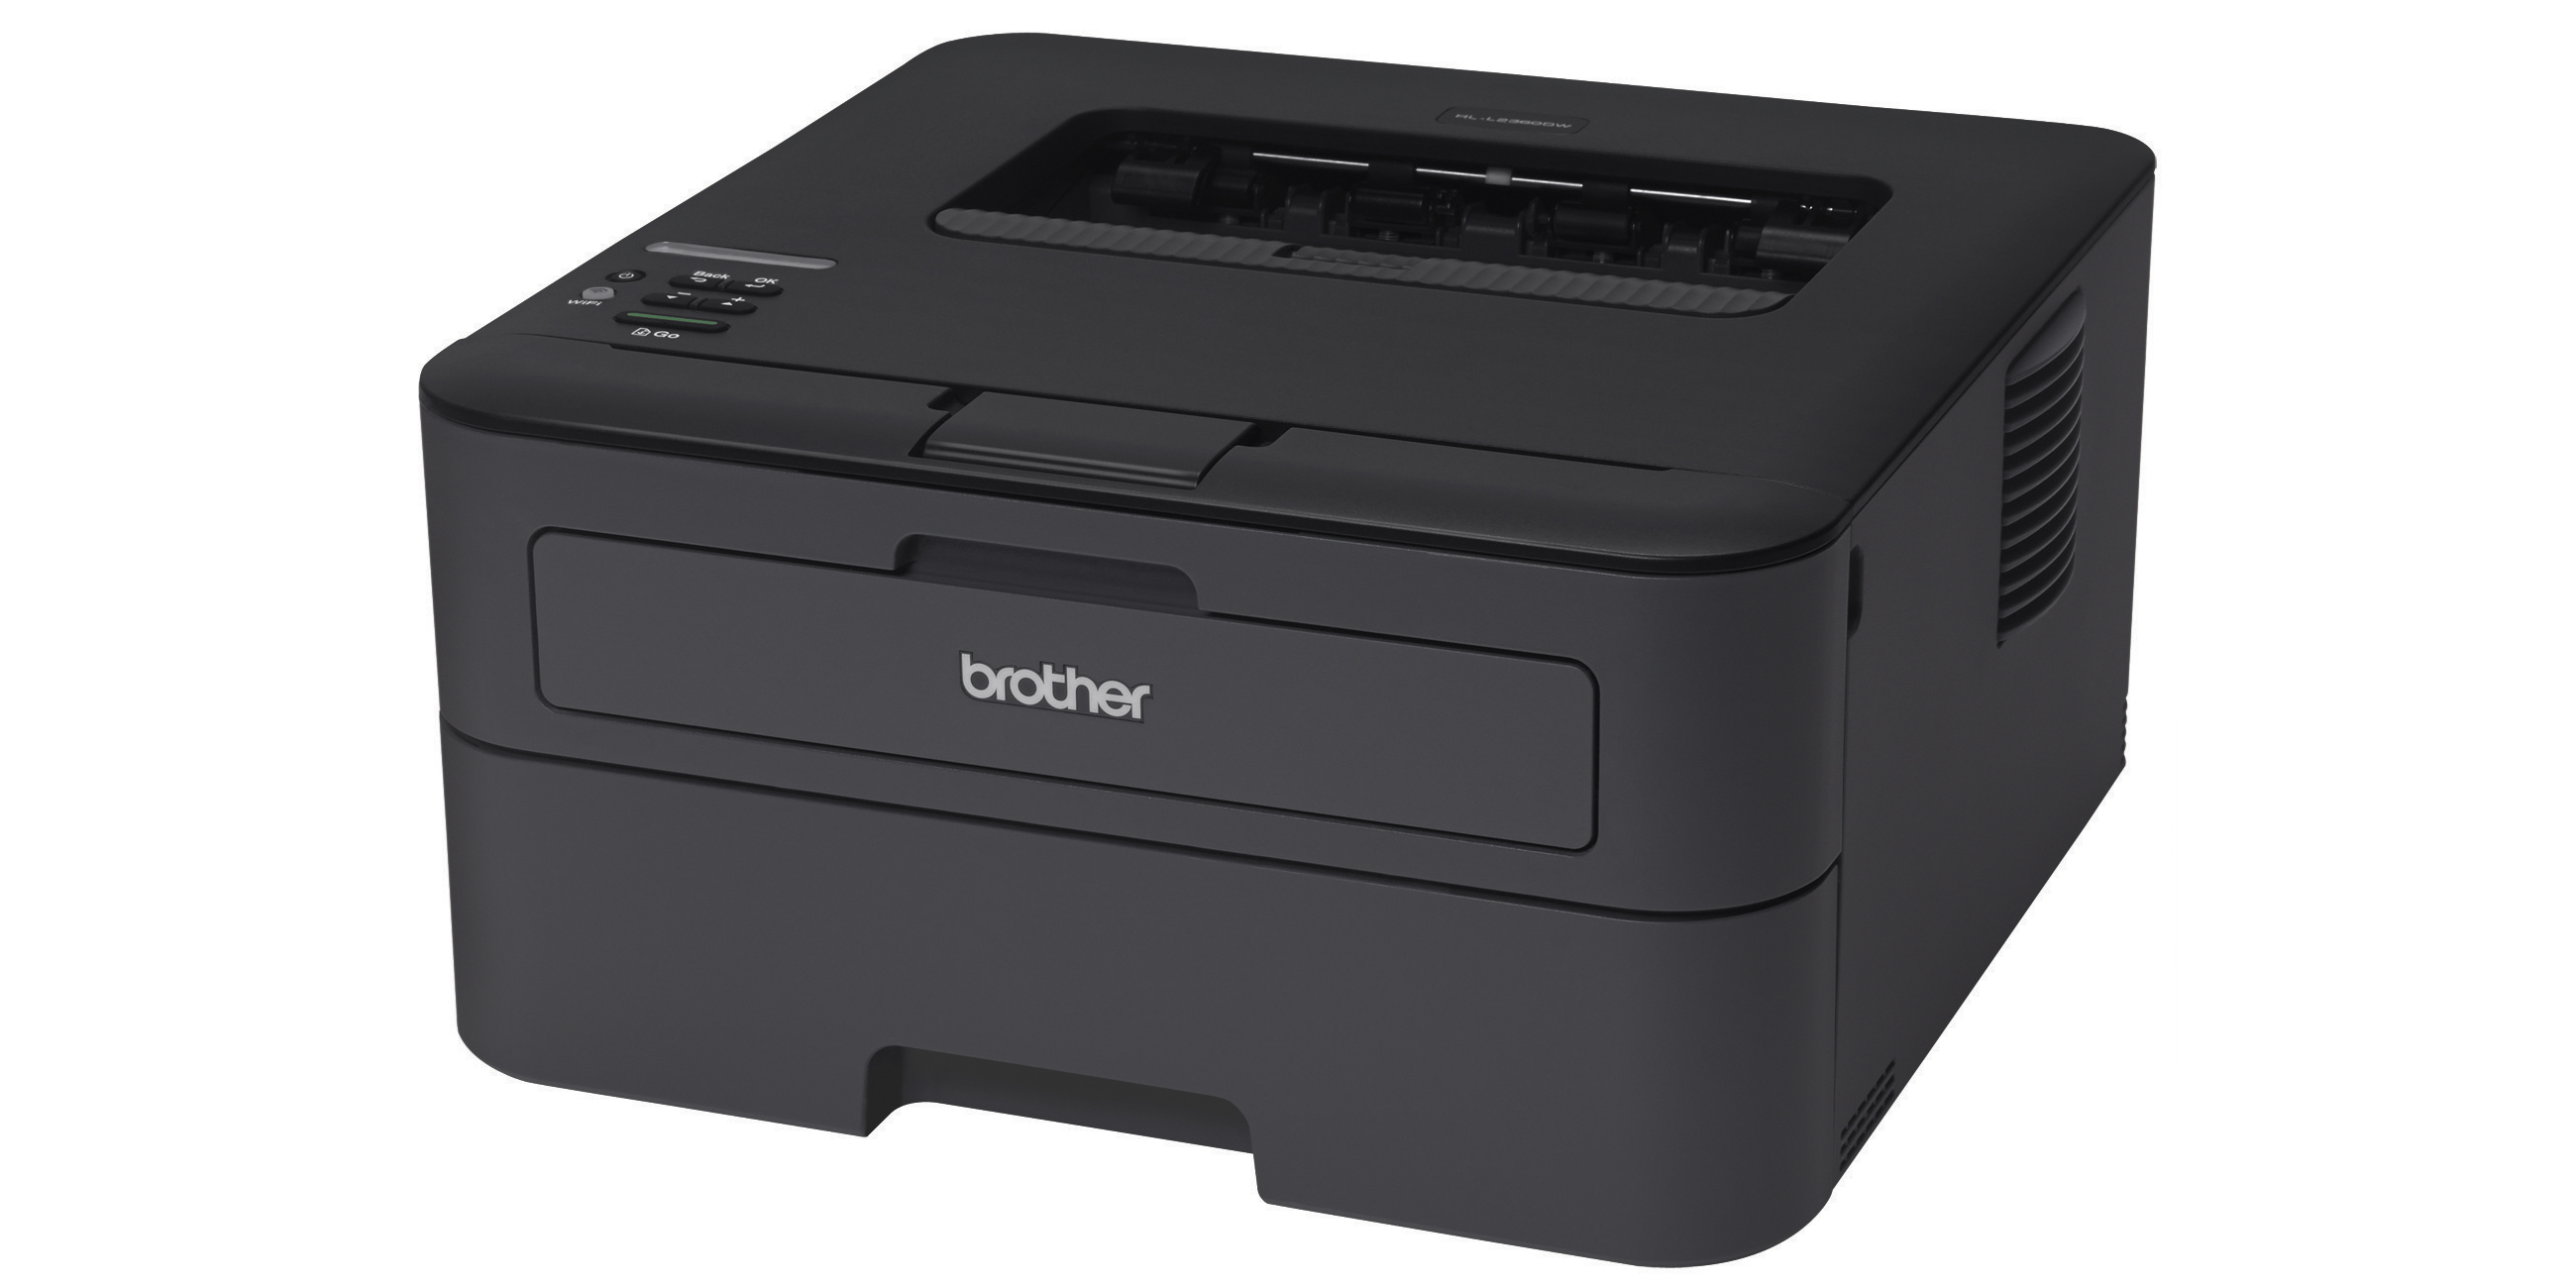 Brother Wireless Laser Printer with AirPrint $80 shipped